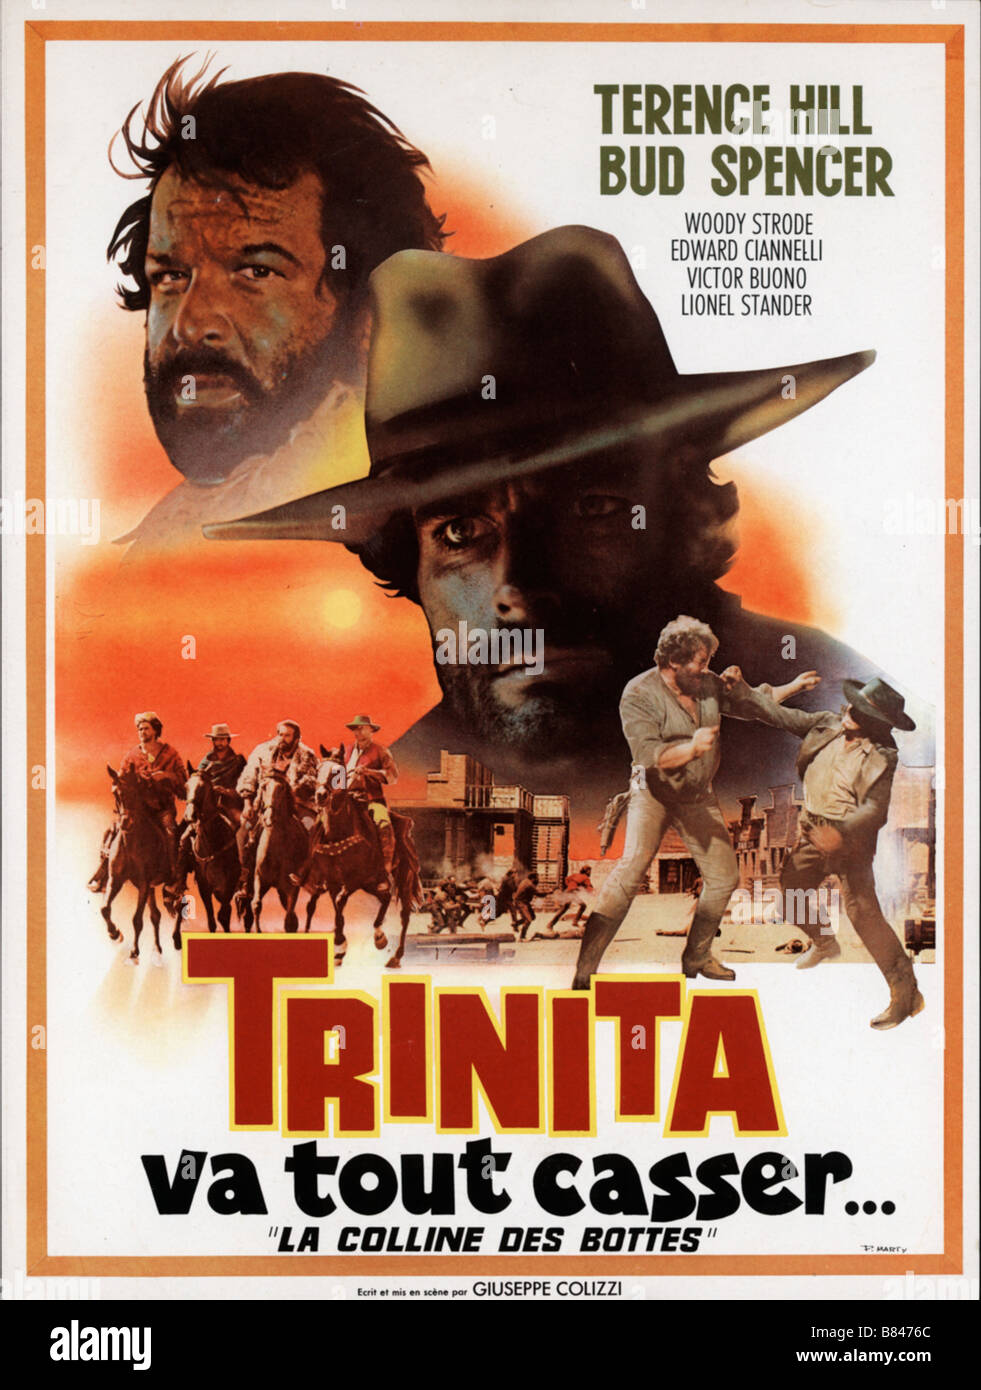 ... - Terence Hill Bud Spencer affiche poster Director Giuseppe Colizzi